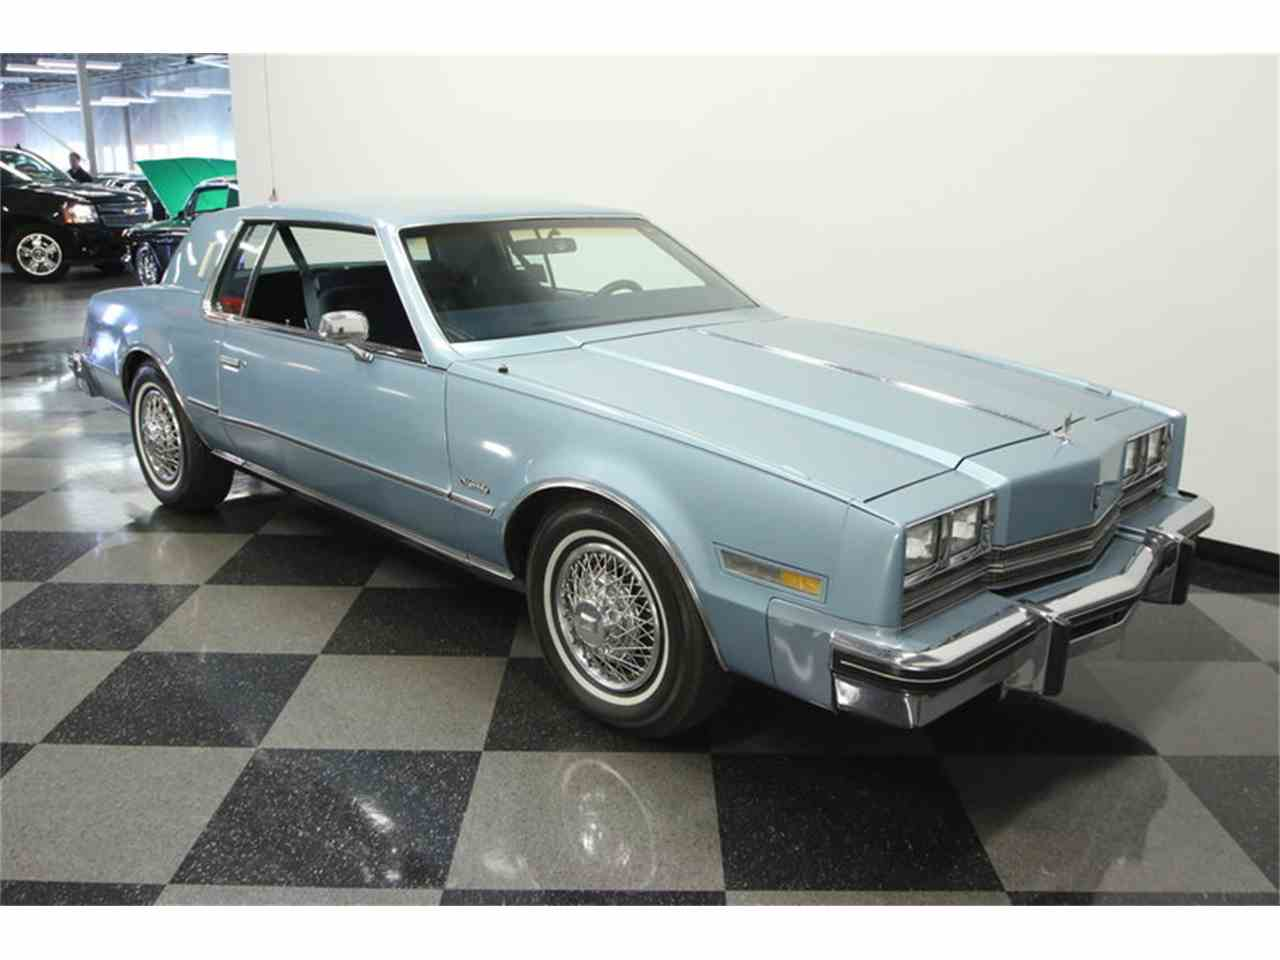 Large Picture of 1985 Toronado located in Lutz Florida - $9,995.00 Offered by Streetside Classics - Tampa - JPY6